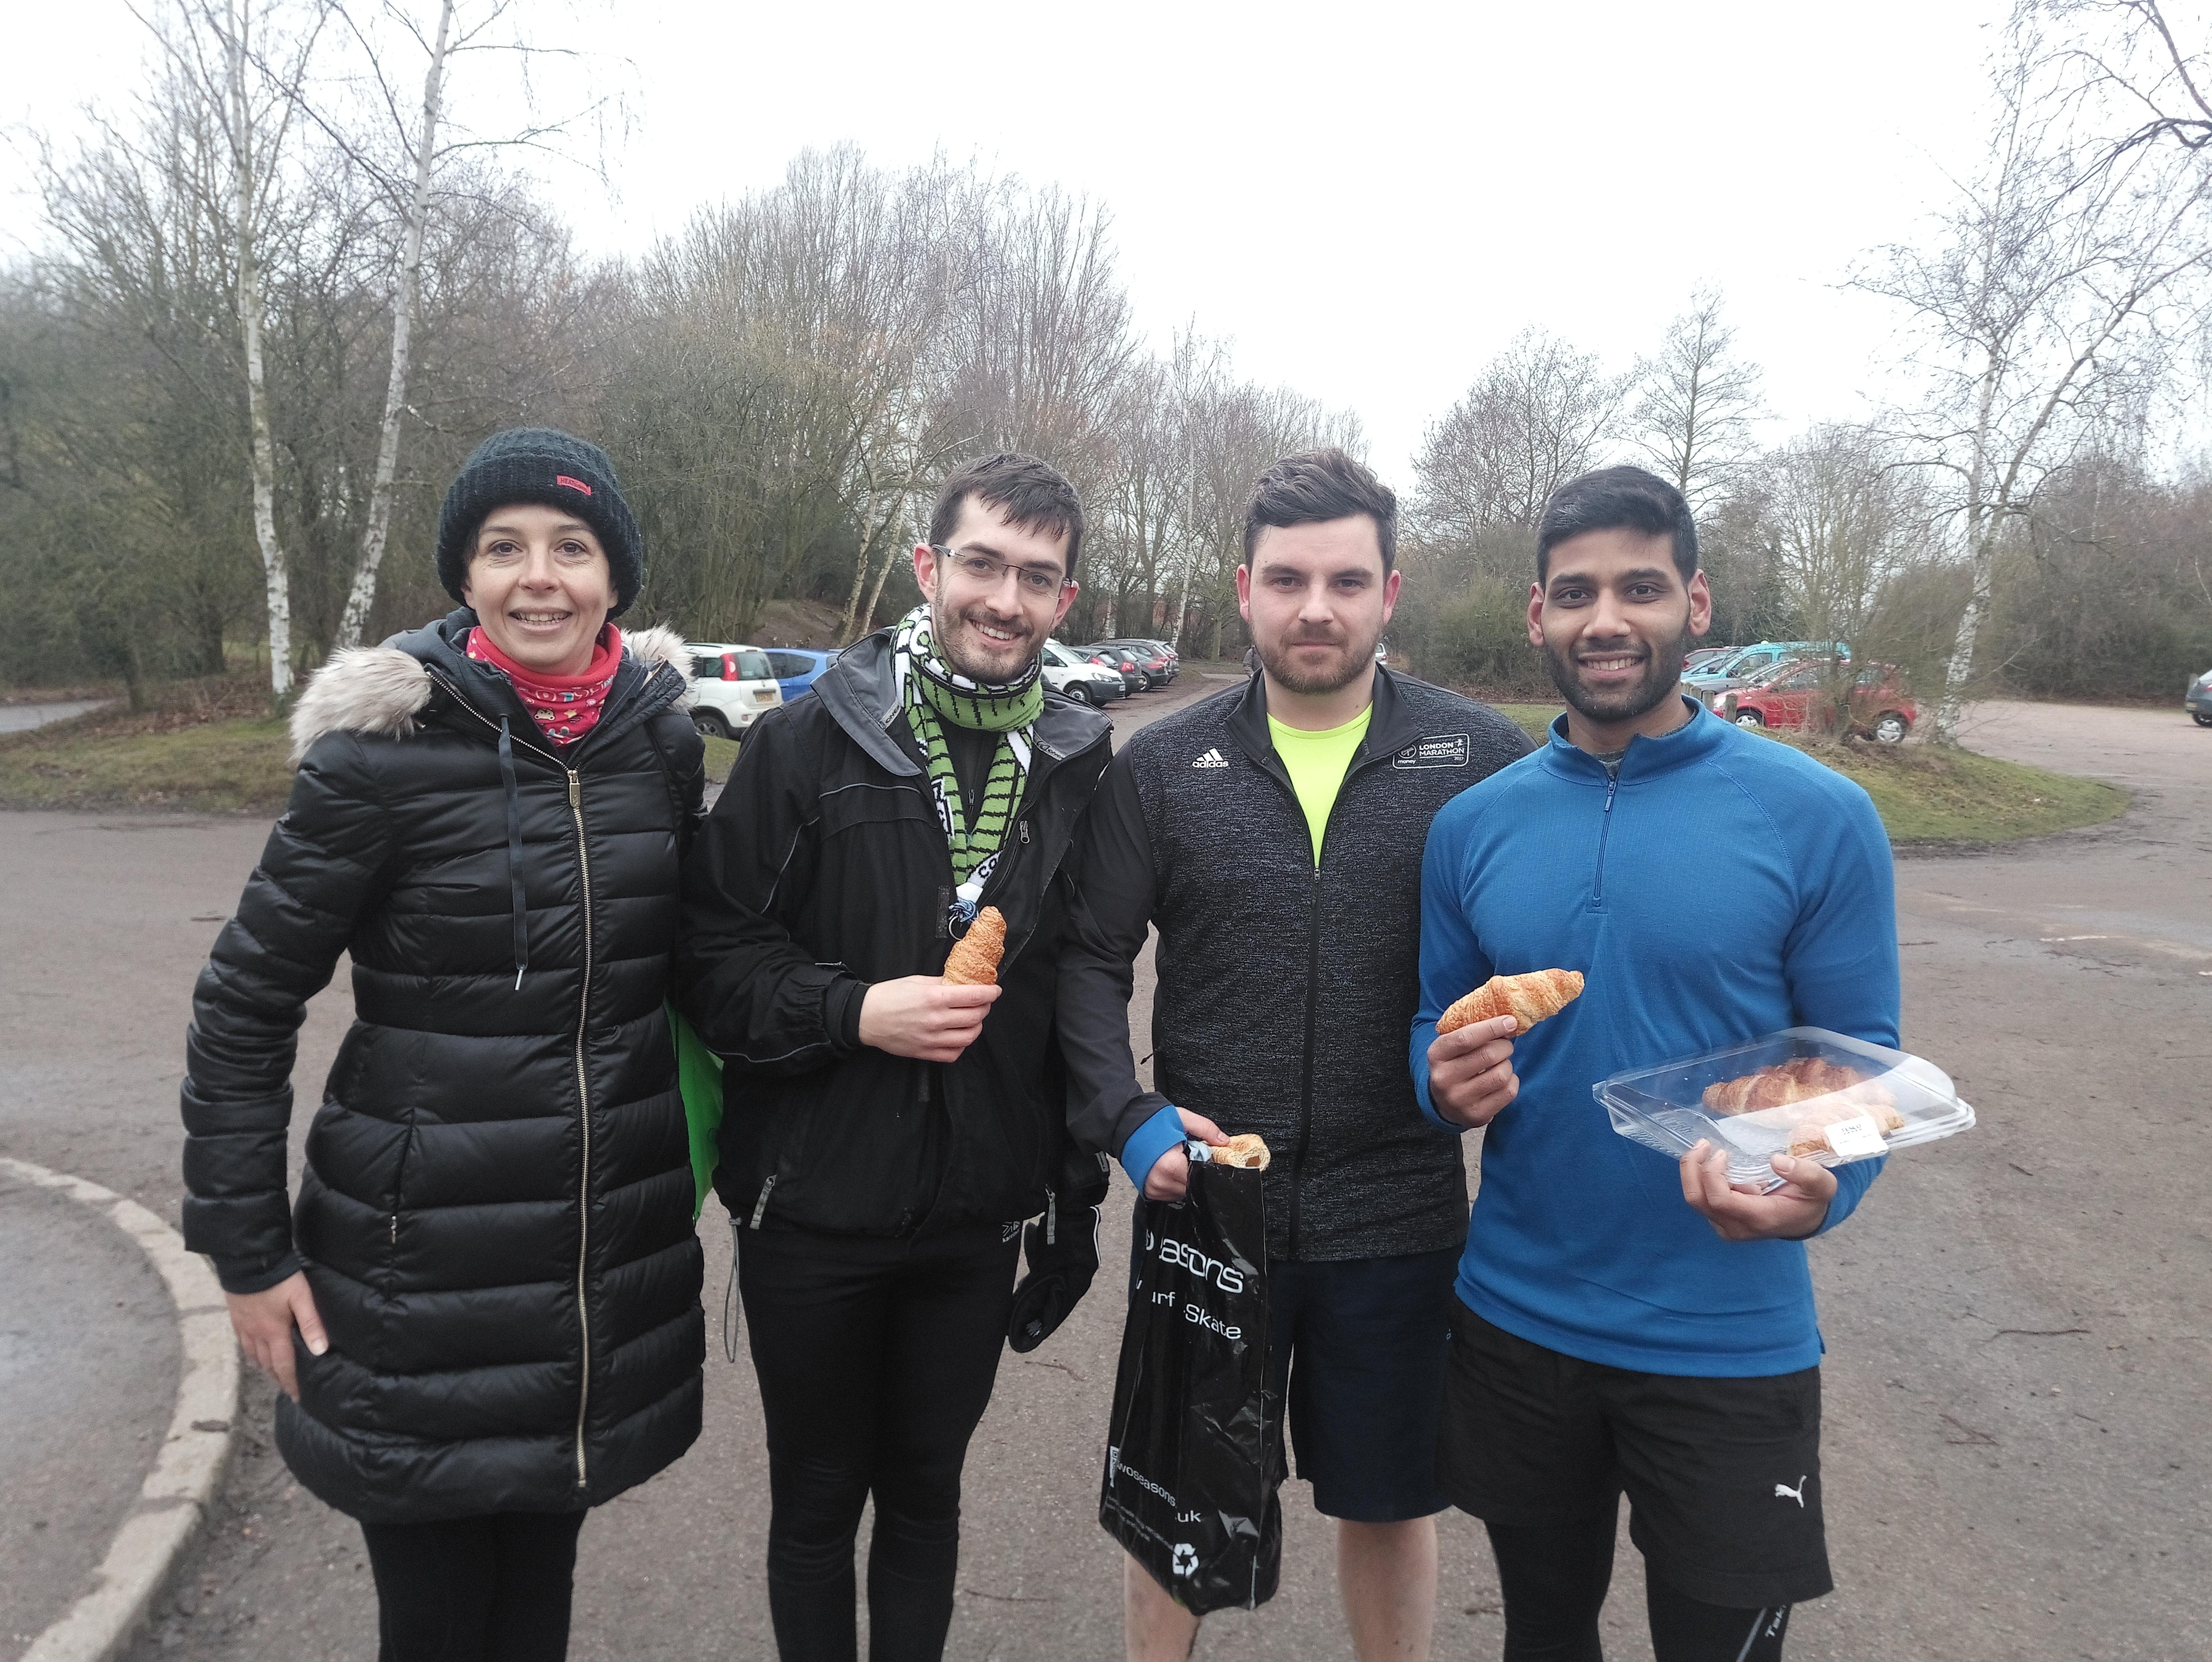 The Pharmacology Fun Runners!